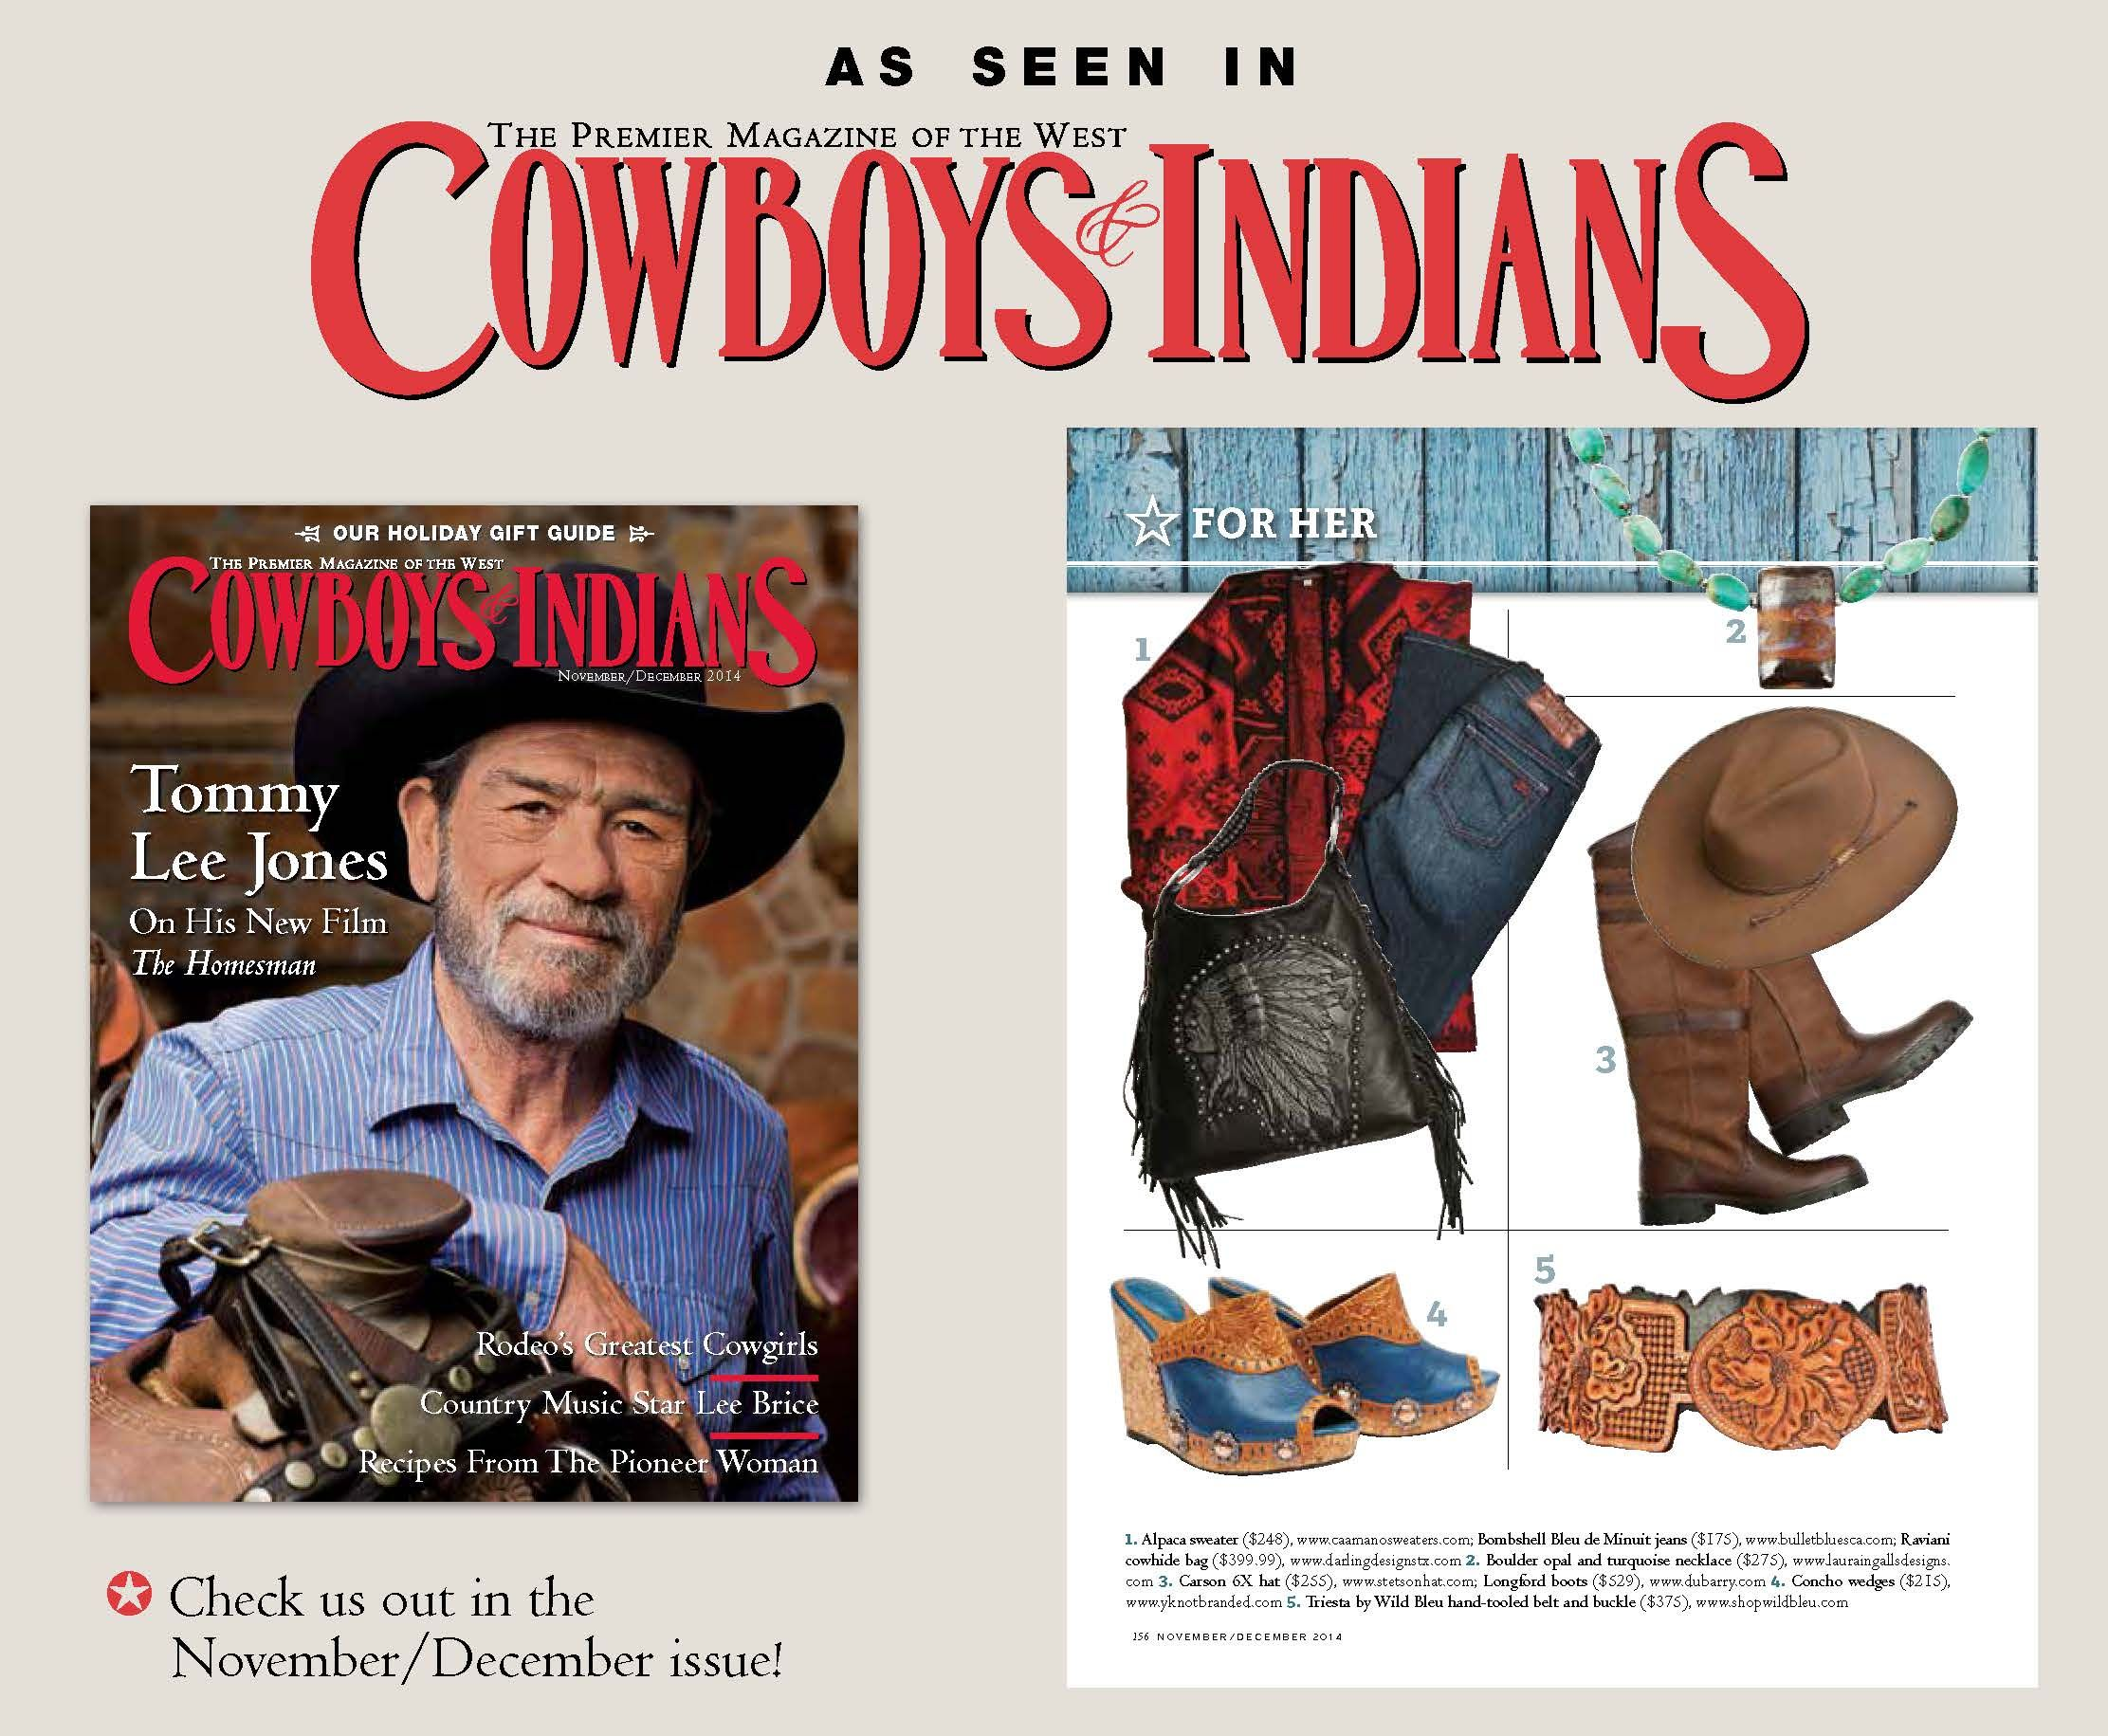 Boulder Opal from Queensland, Australia paired with Turquoise nuggets and Sterling Silver necklace featured in the Cowboys & Indians magazine 2014 Holiday Gift Guide.